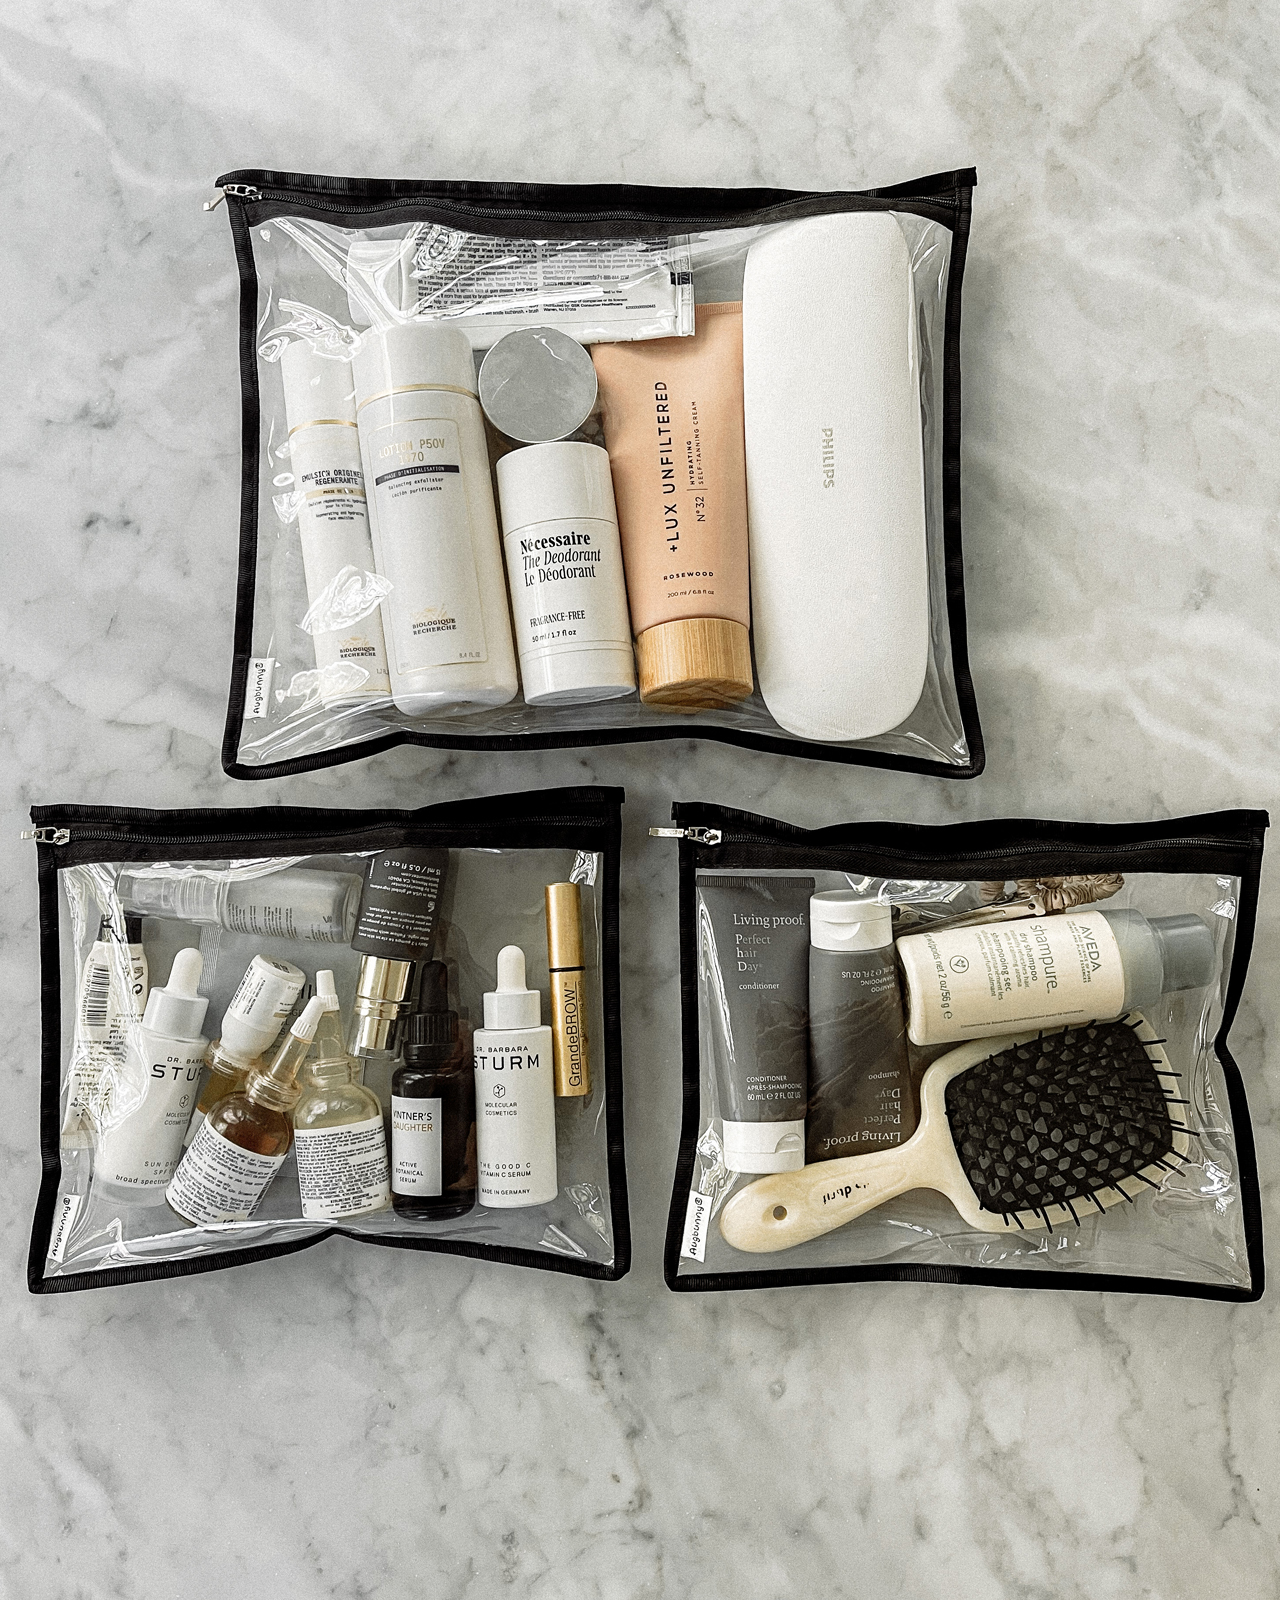 Fashion Jackson Whats In My Beauty Travel Bag Amazon Clear Storage Pouches